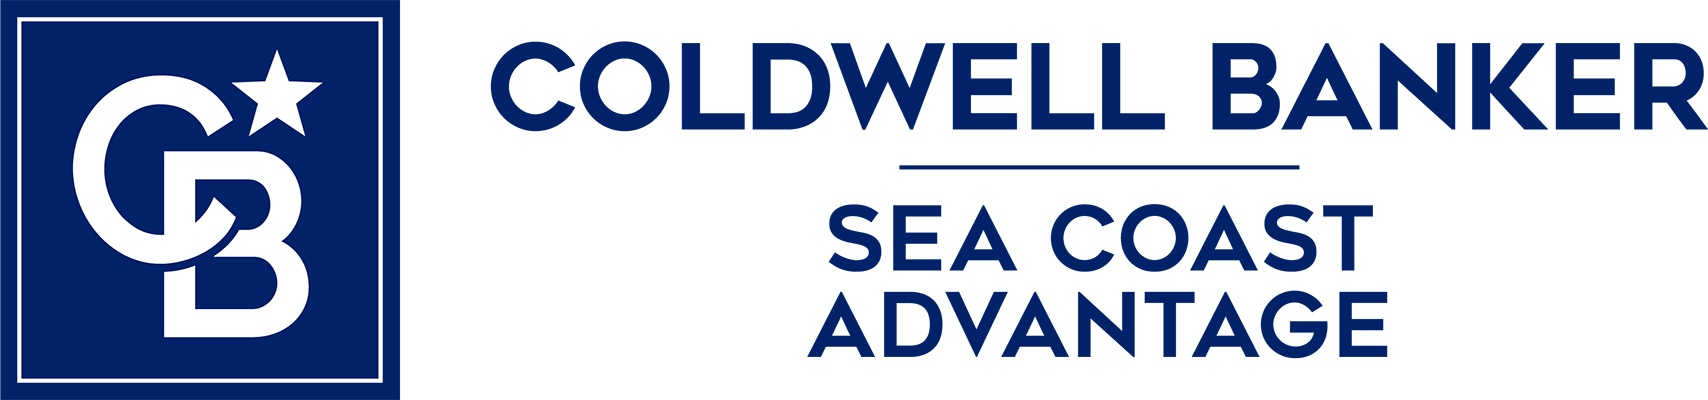 Tryna Blumer - Coldwell Banker Sea Coast Advantage Realty Logo